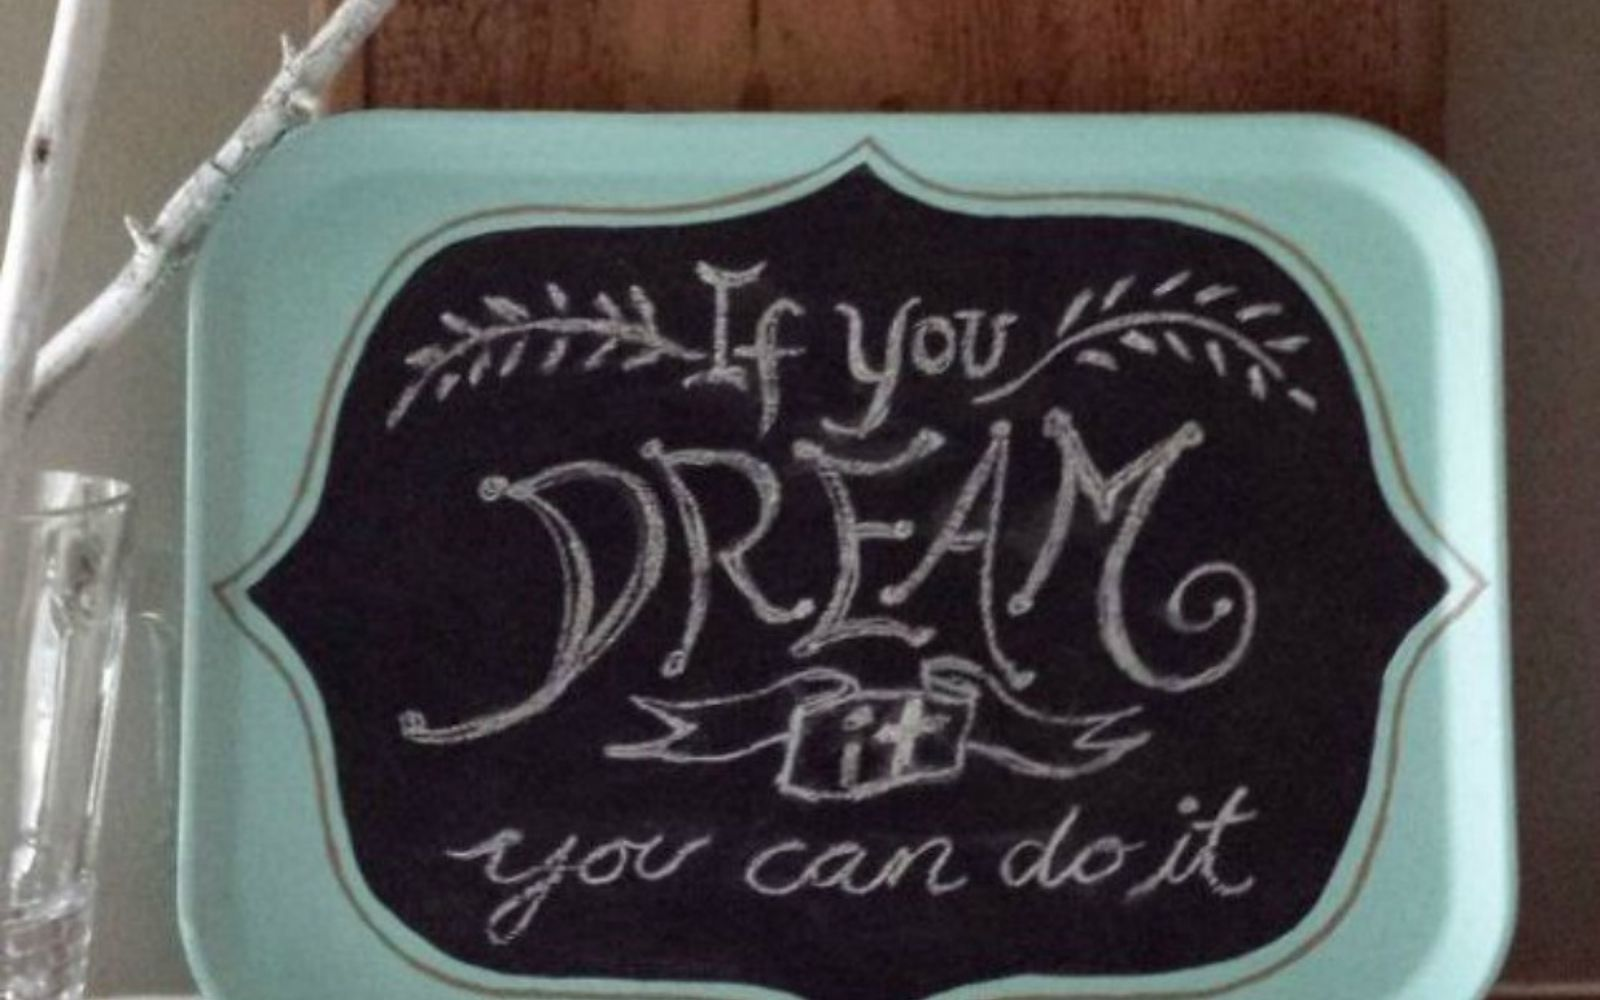 s 14 amazing things you can do with dollar store appetizer dishes, Craft them into a inspirational chalk board